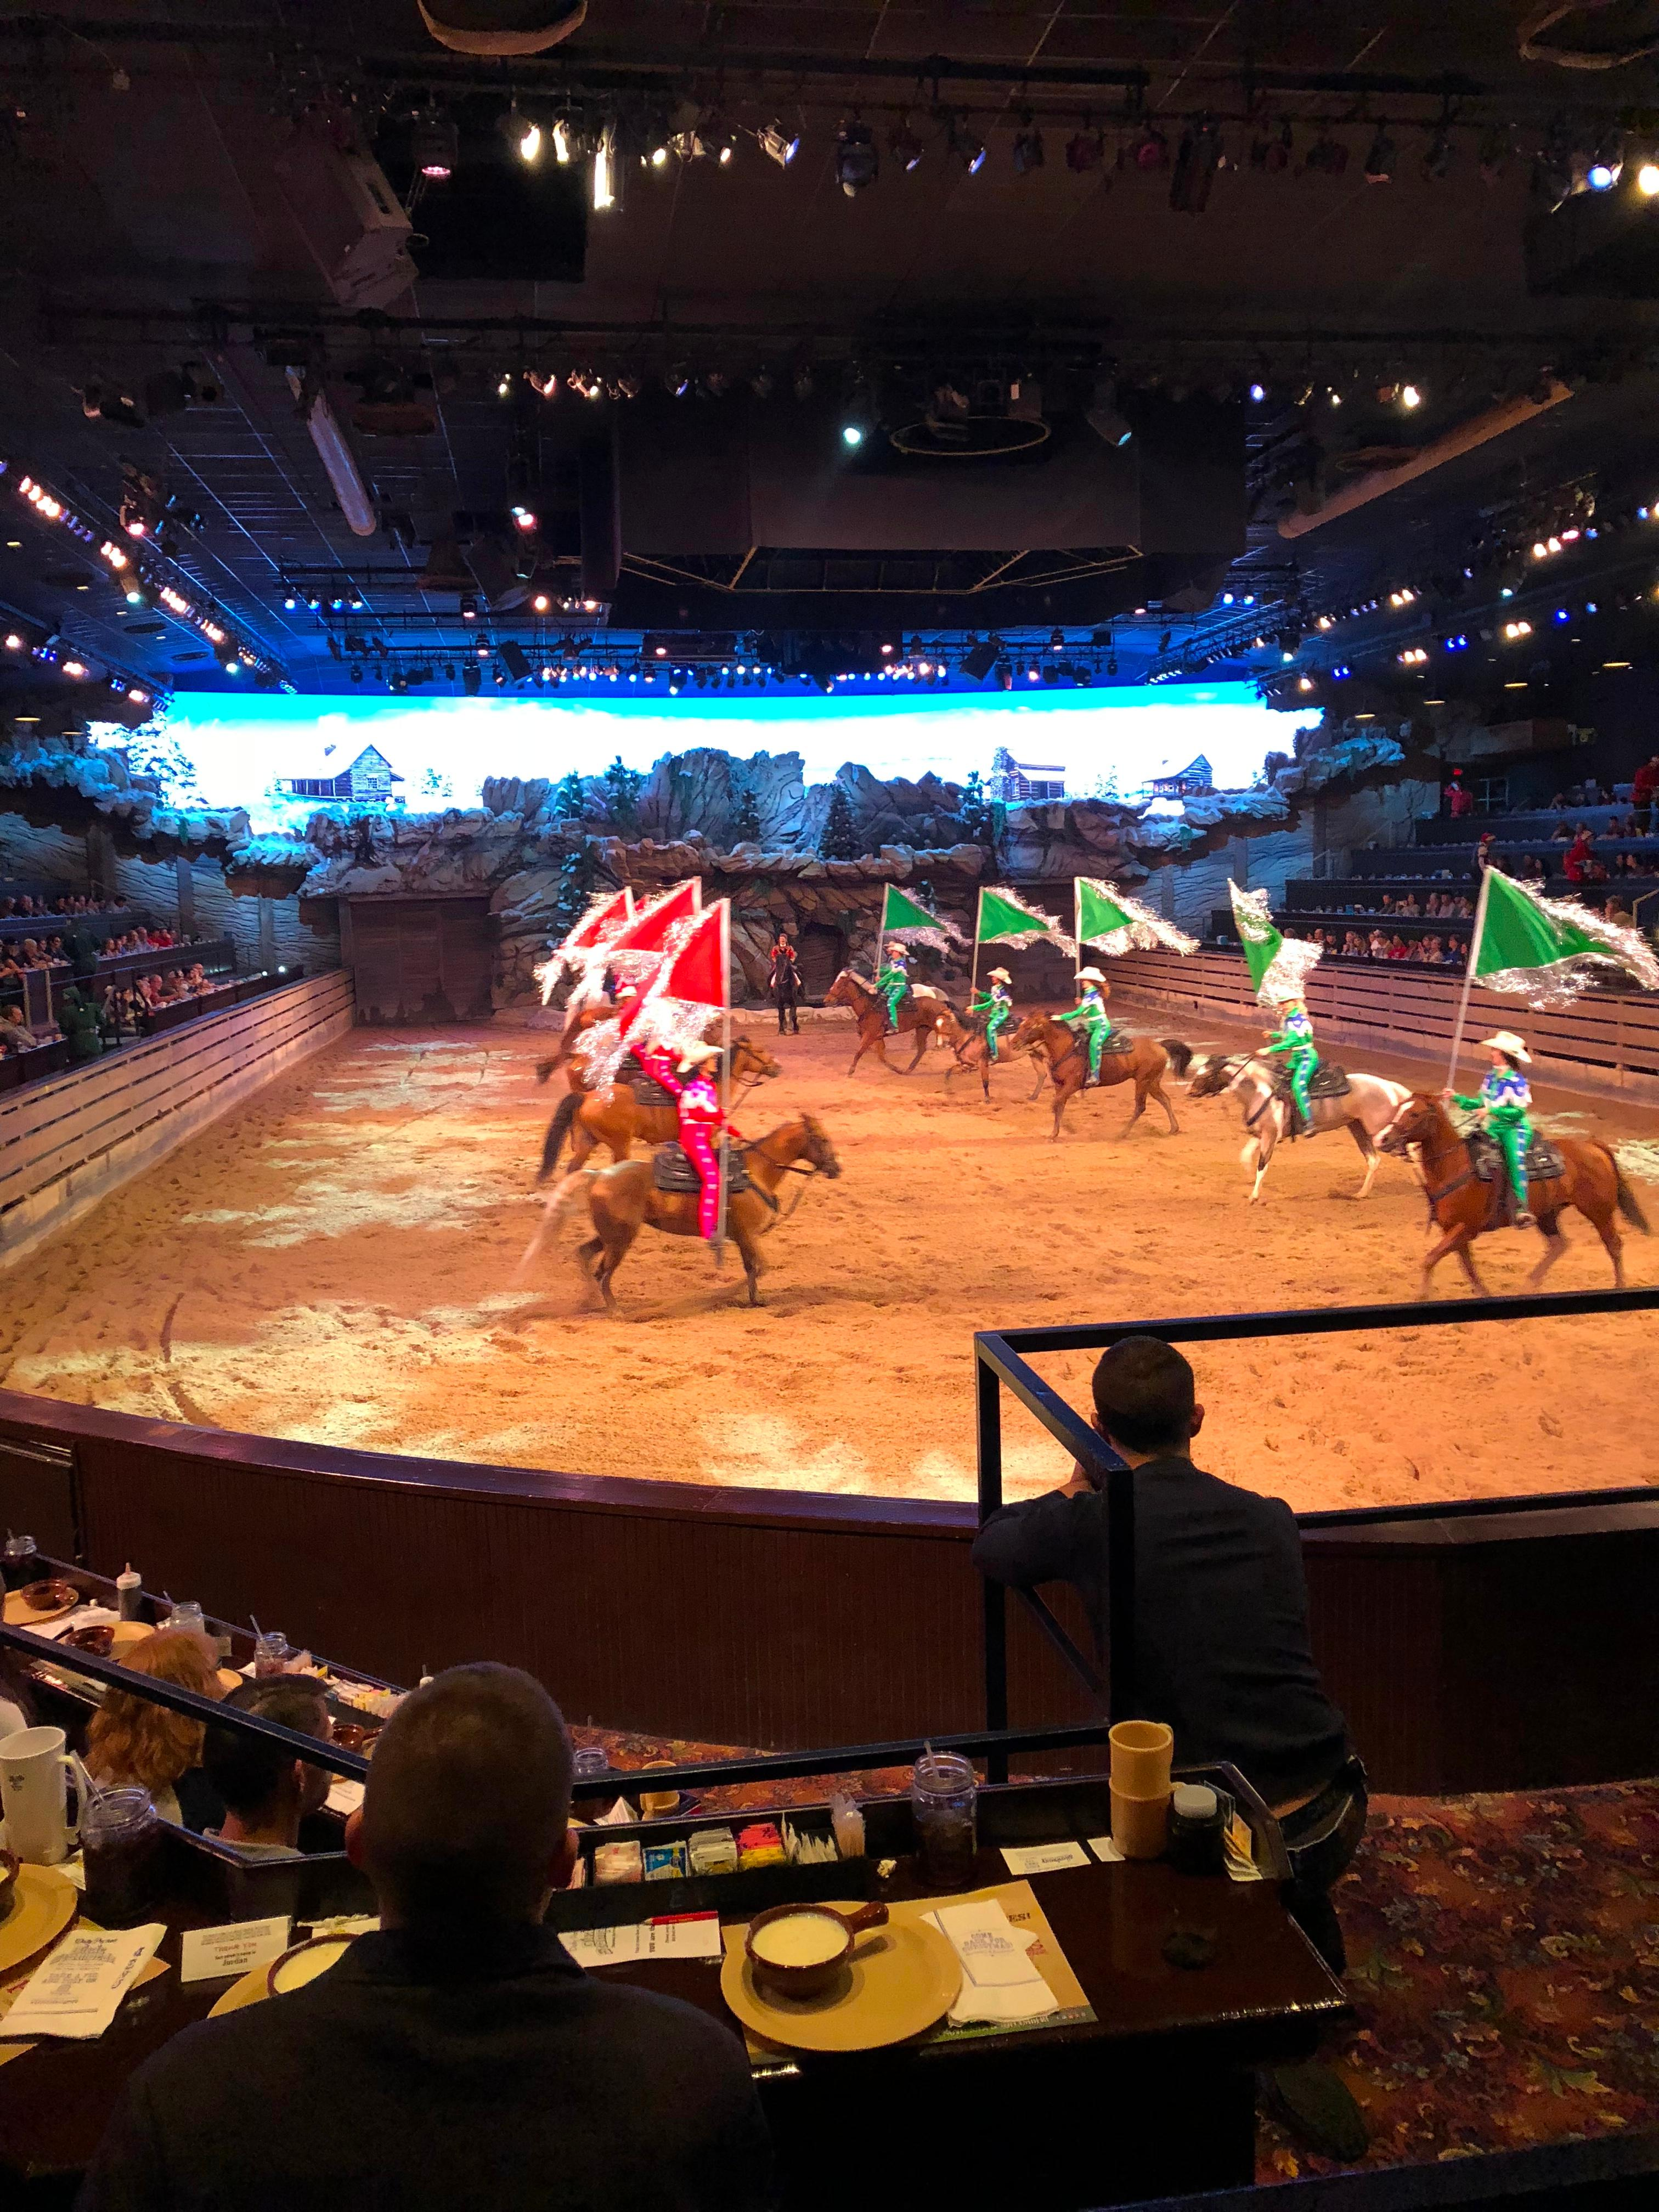 Horseback Riders at Dolly Parton's Stampede Dinner and Show Branson